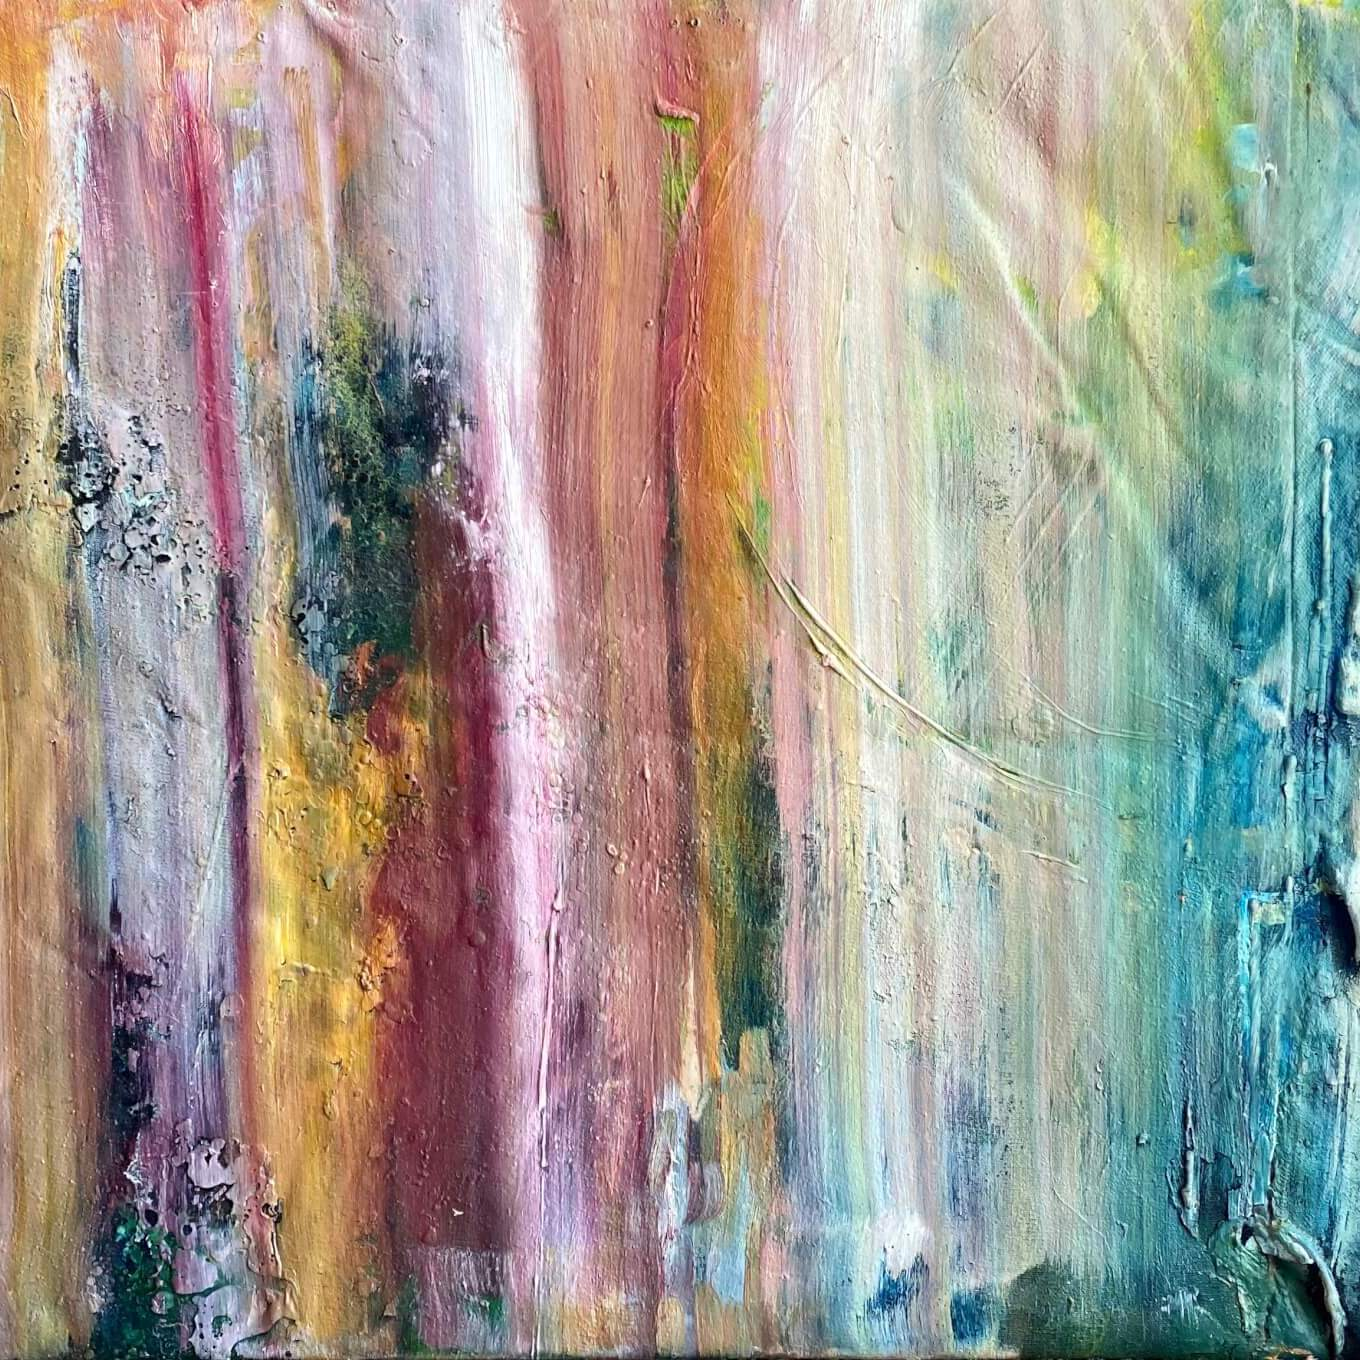 Waterfall - Abstract Painting in Art Portfolio